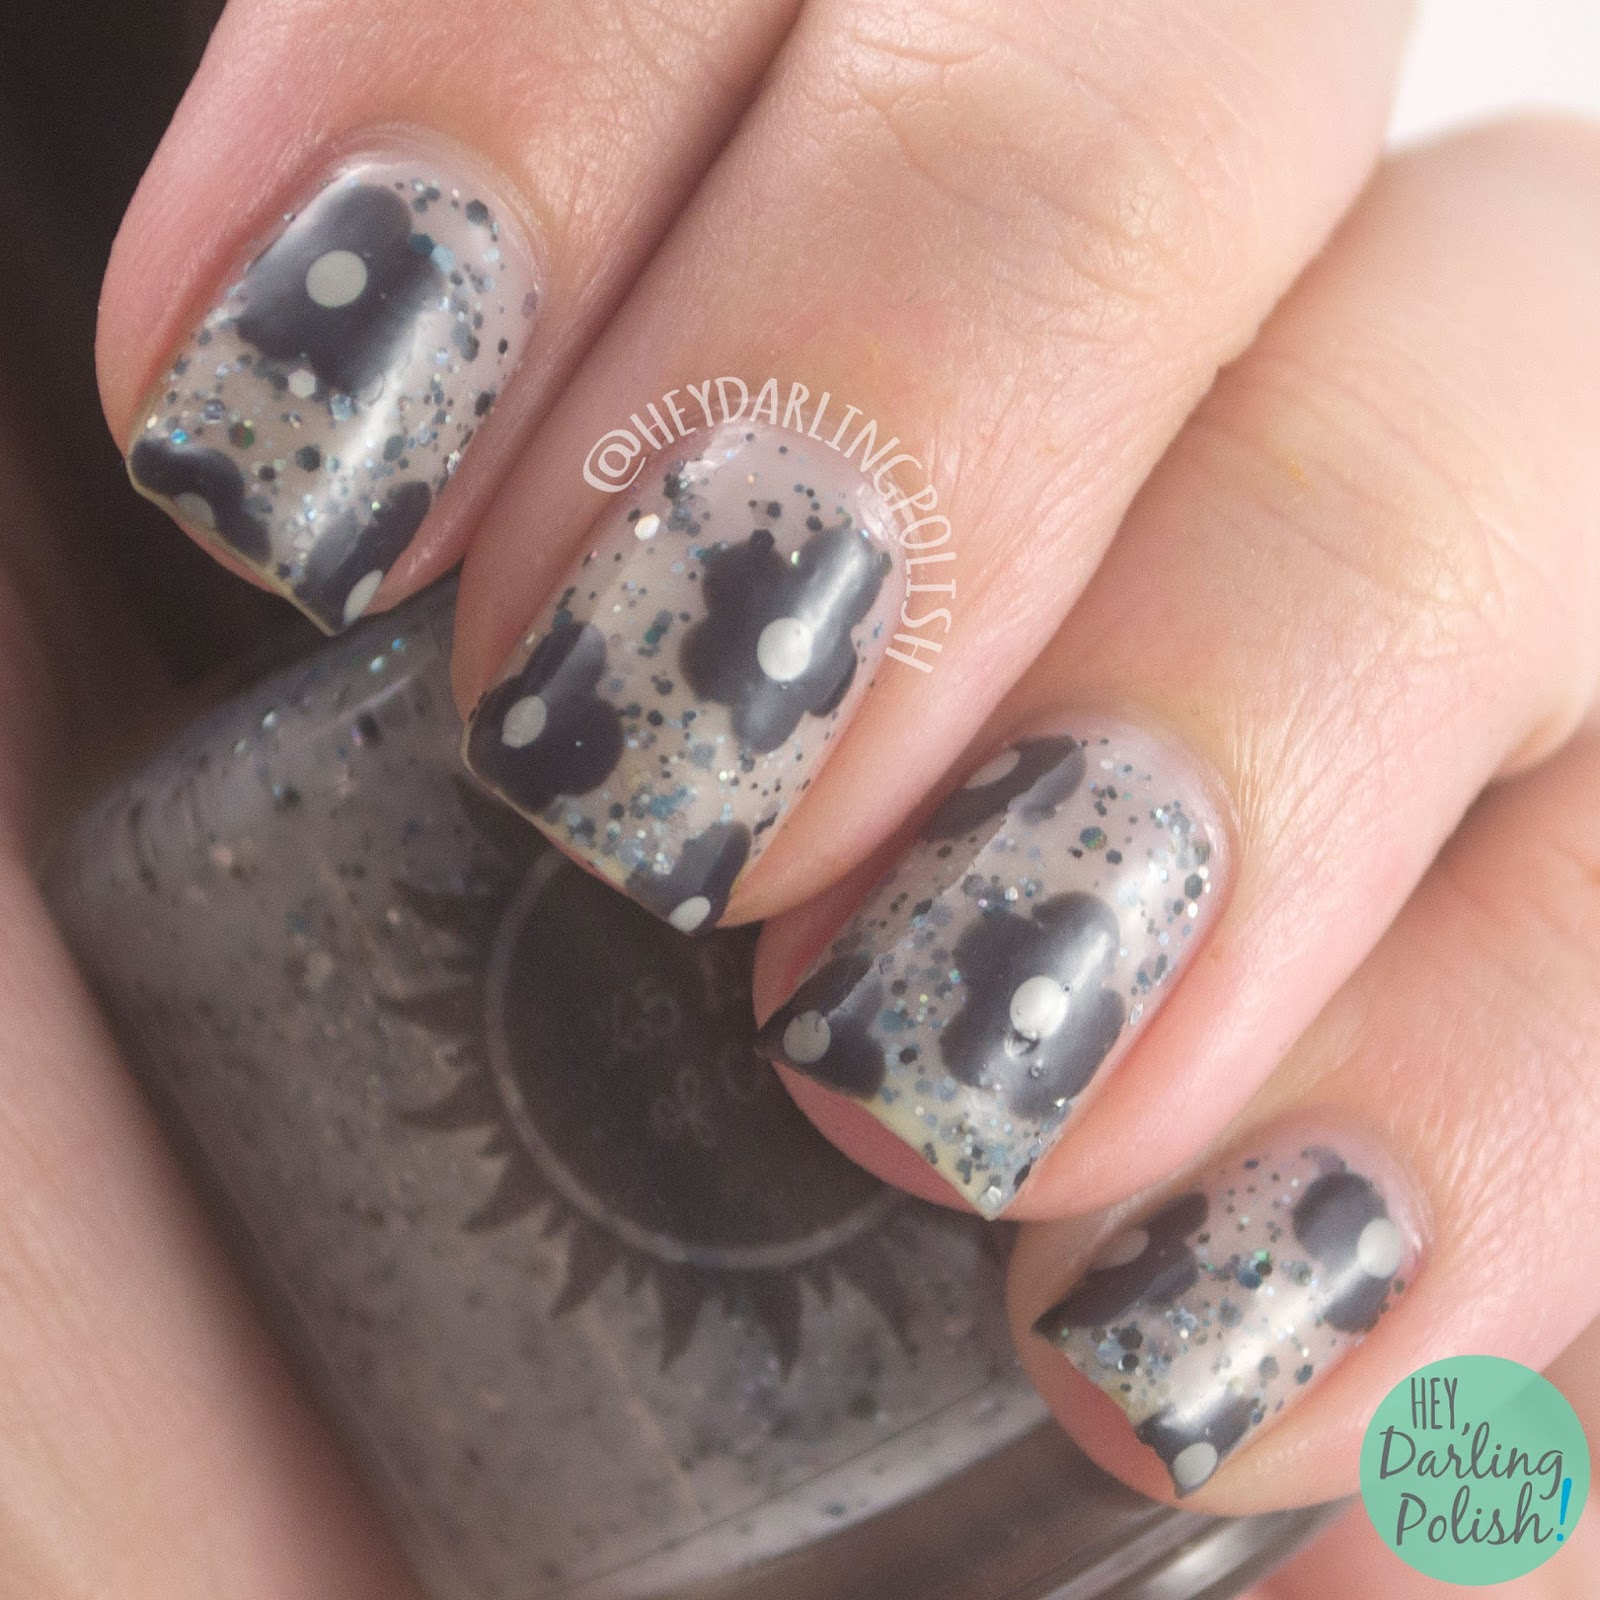 nails, nail art, nail polish, indie, indie nail polish, indie polish, flowers, grey, glitter, flowers, hey darling polish, 365 days of color, the diary